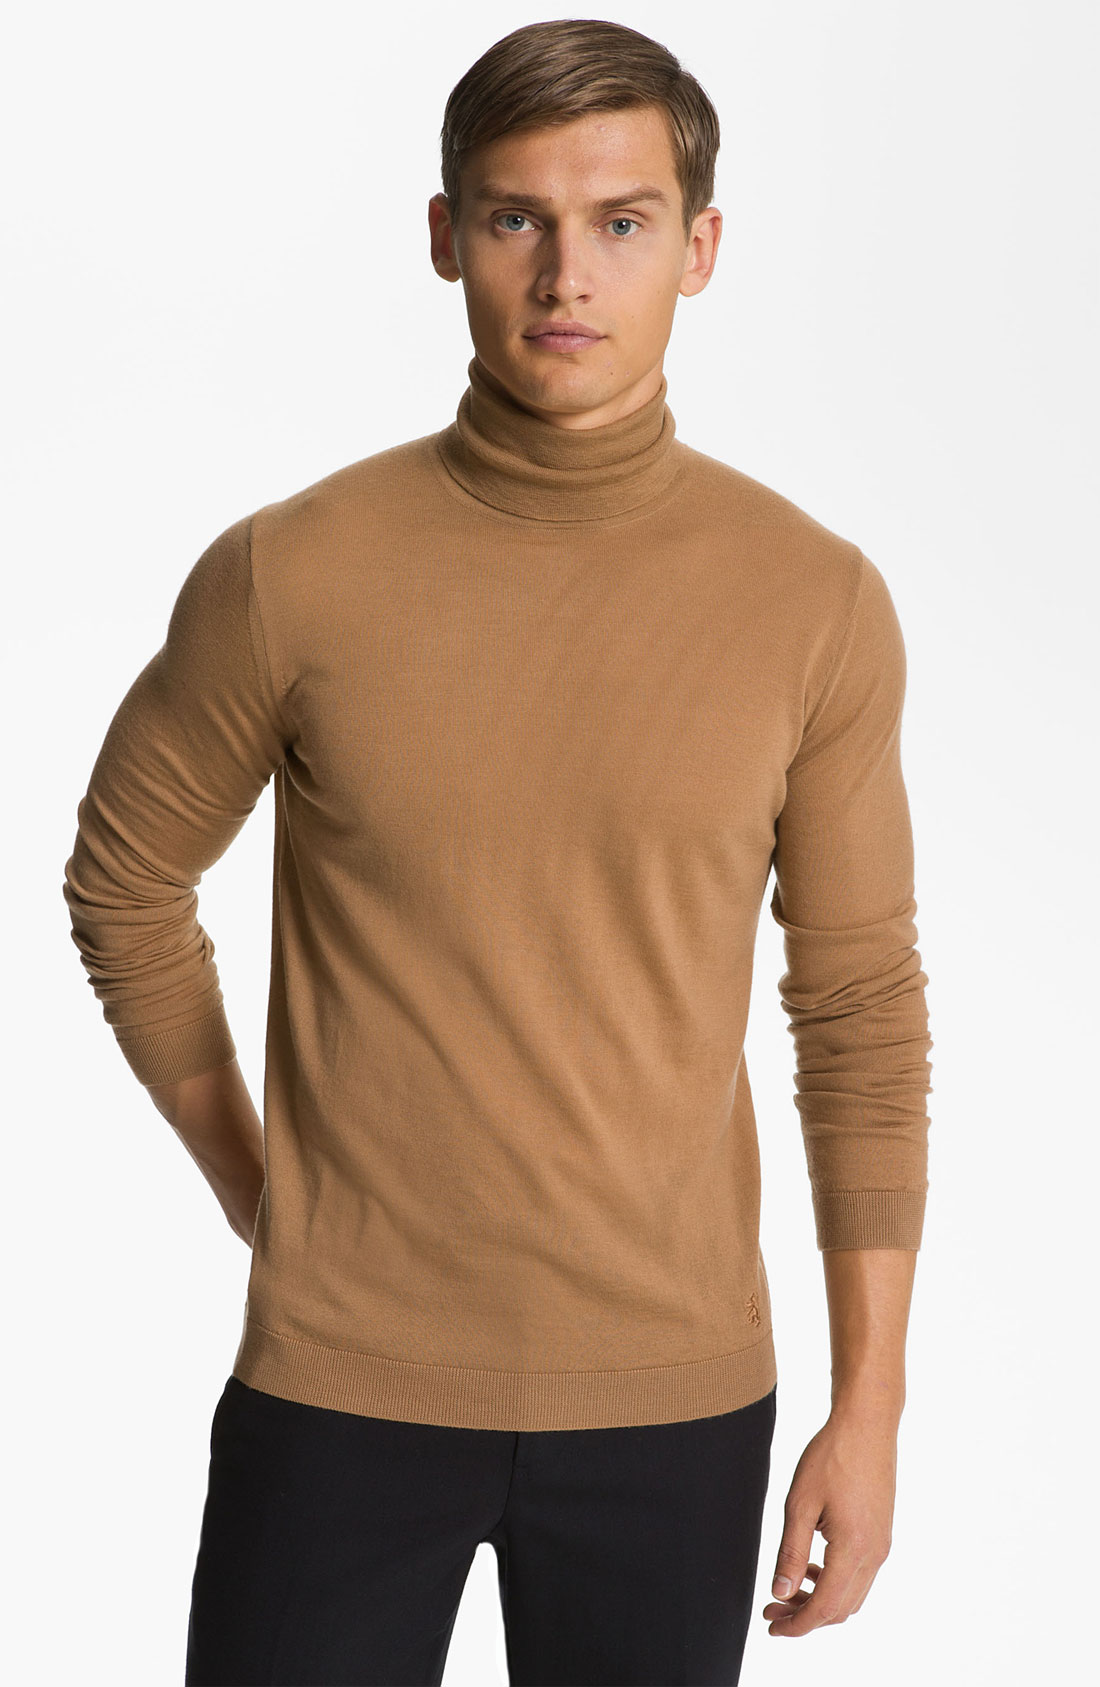 When do turtlenecks look good or not? : malefashionadvice